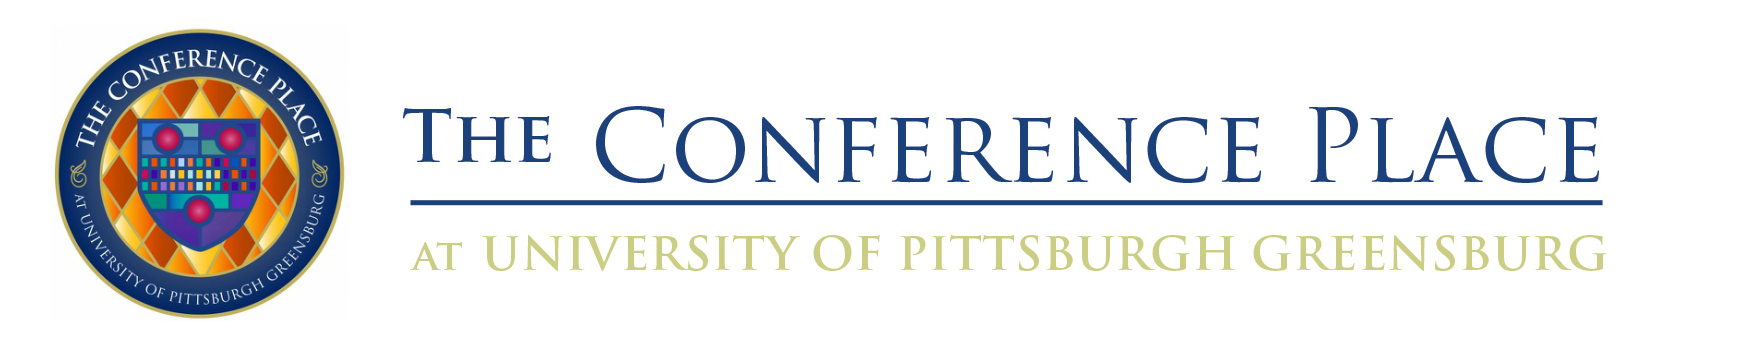 The Conference Place at University of Pittsburgh at Greensburg logo